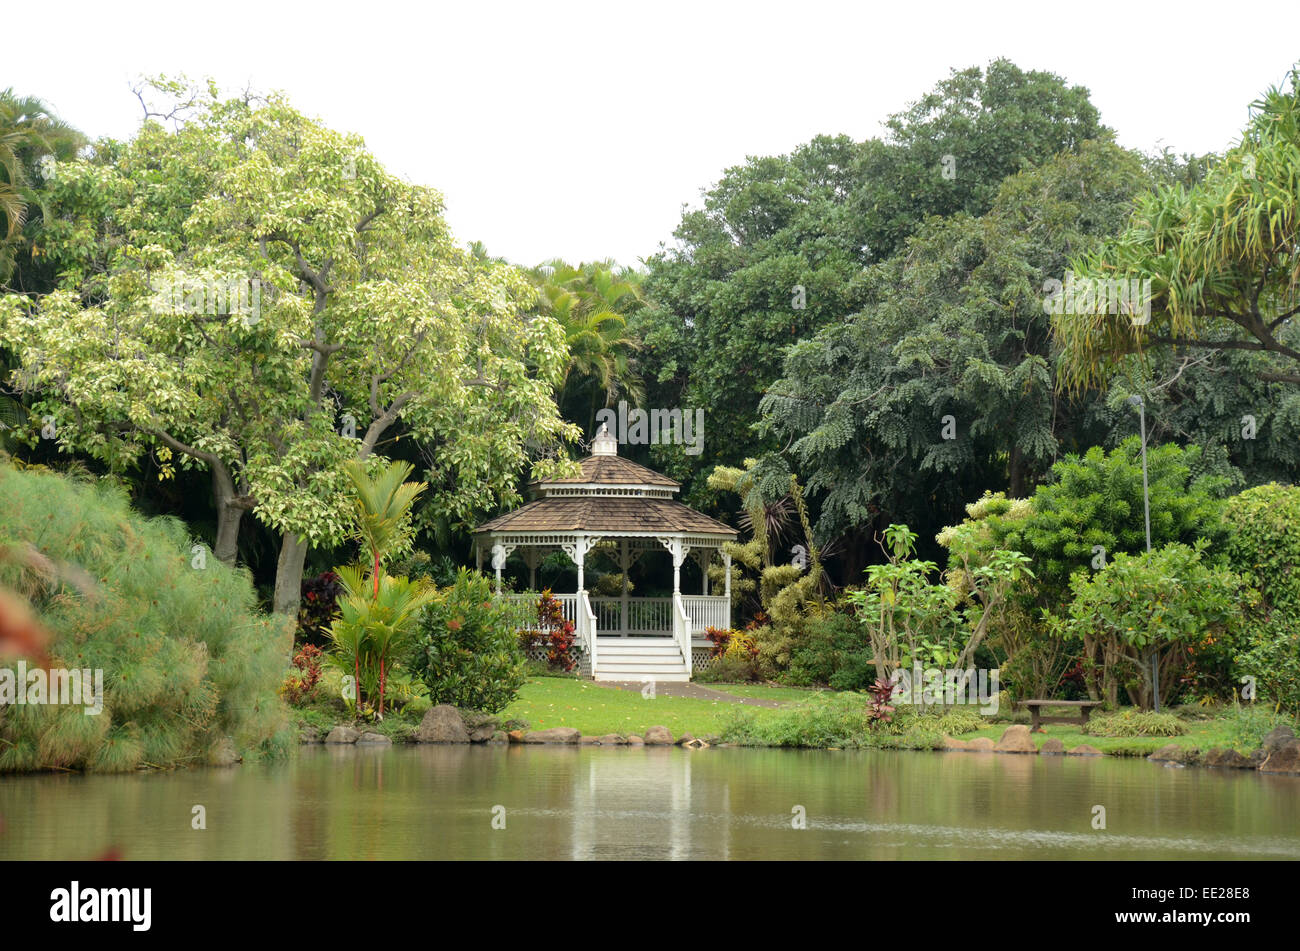 Gazebo on a lush tropical lake - Stock Image